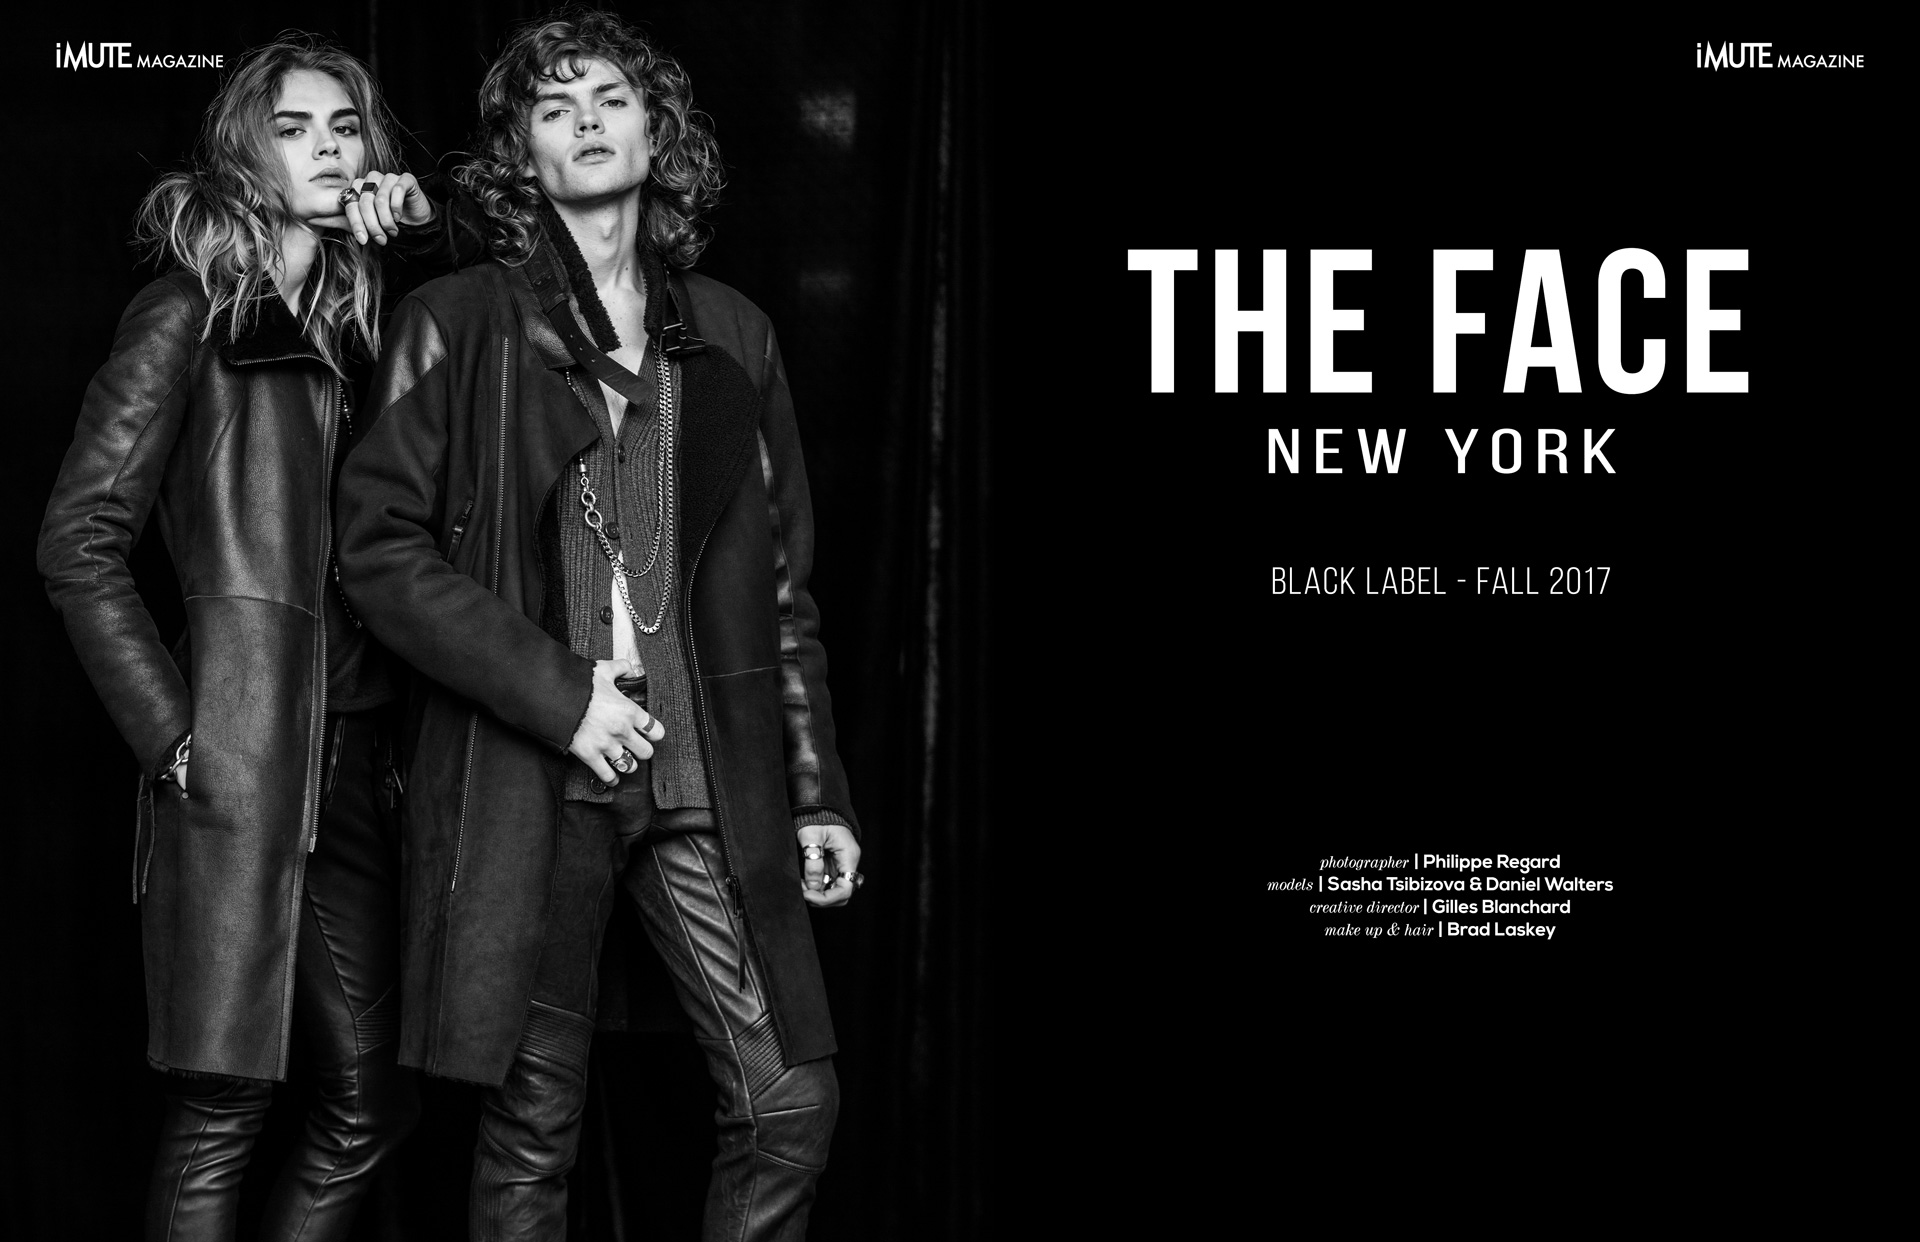 THE FACE New York - Fall 2017 for iMute Magazine Photographer | Philippe Regard Models | Sasha Tsibizova & Daniel Walters Creative Director | Gilles Blanchard Makeup & Hair | Brad Laskey